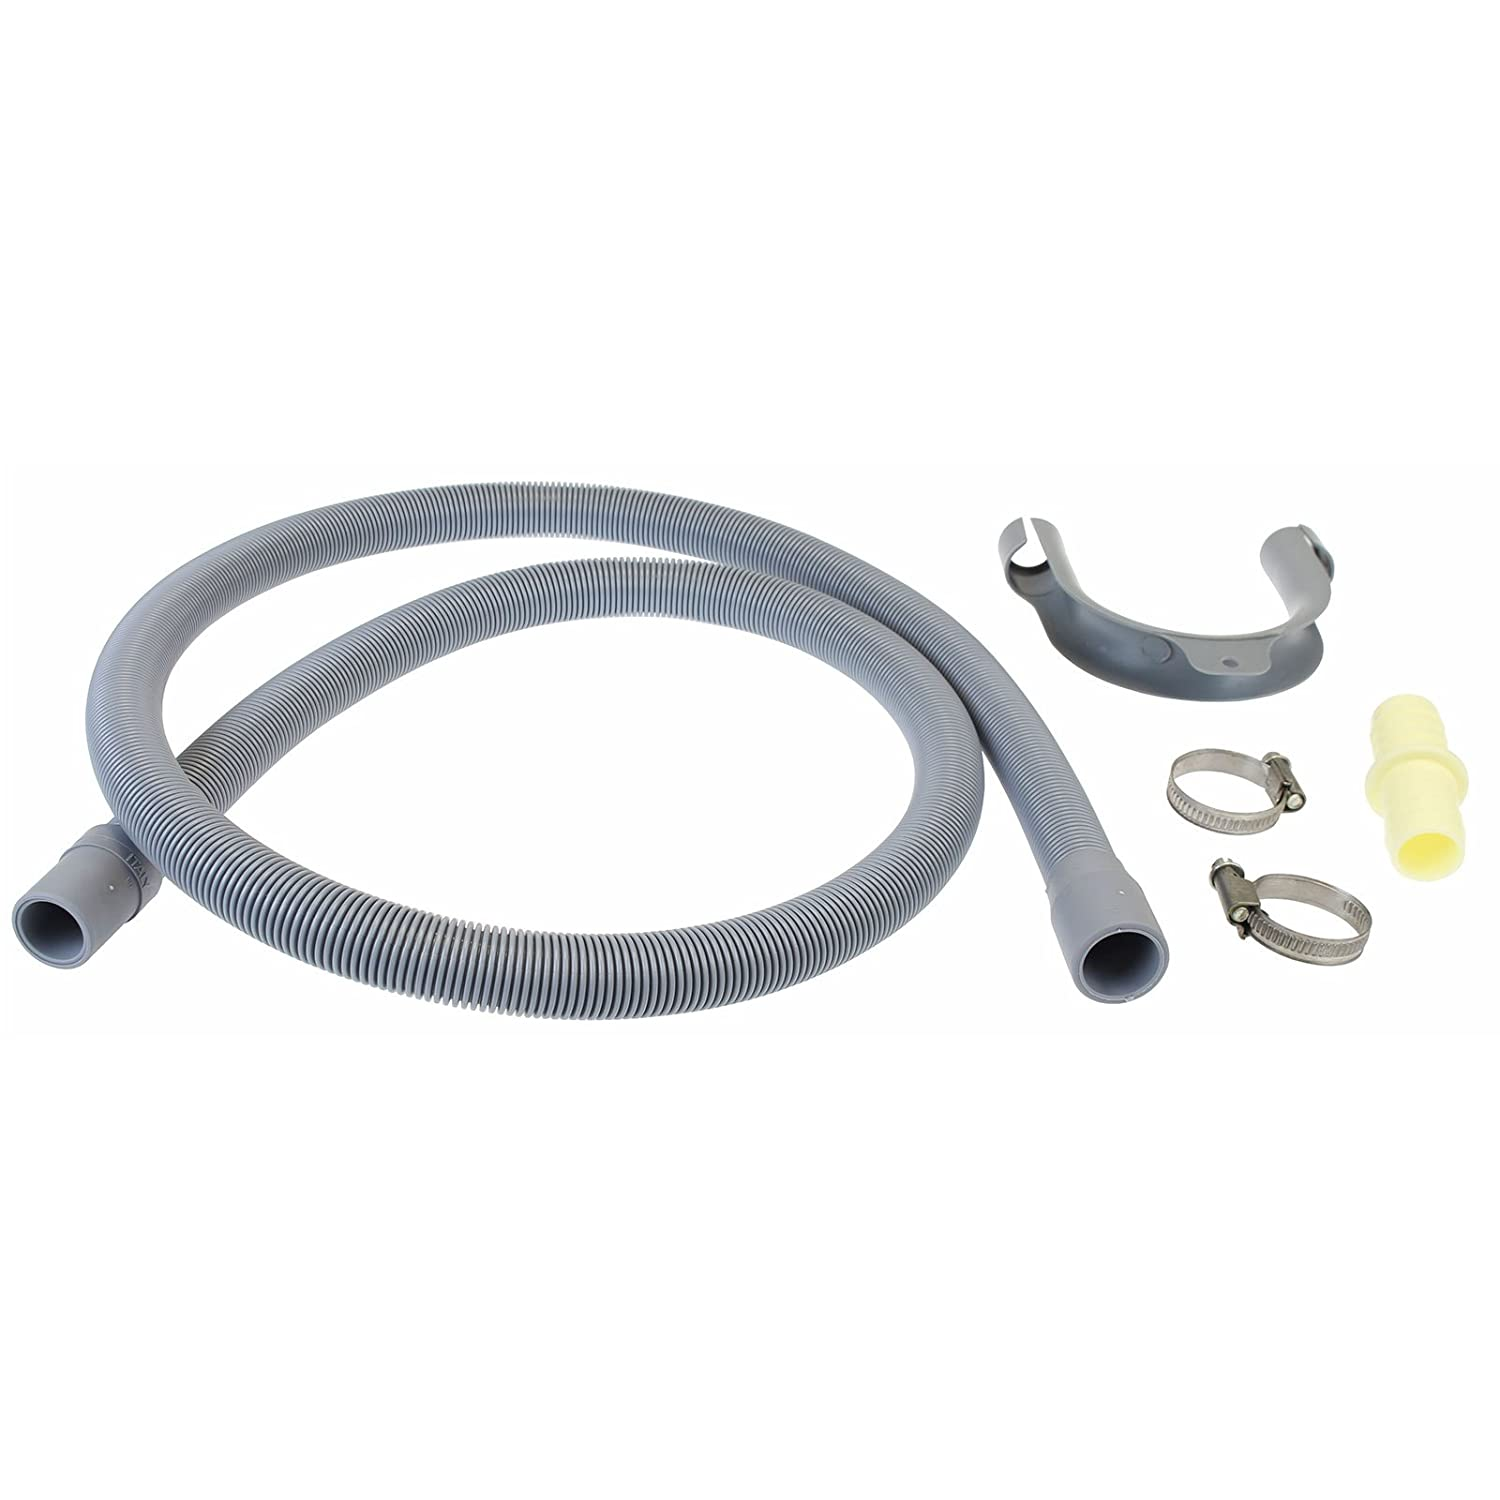 First4Spares Premium Replacement Drain Hose Extension Kit for Hotpoint Washing Machines - 1.6m